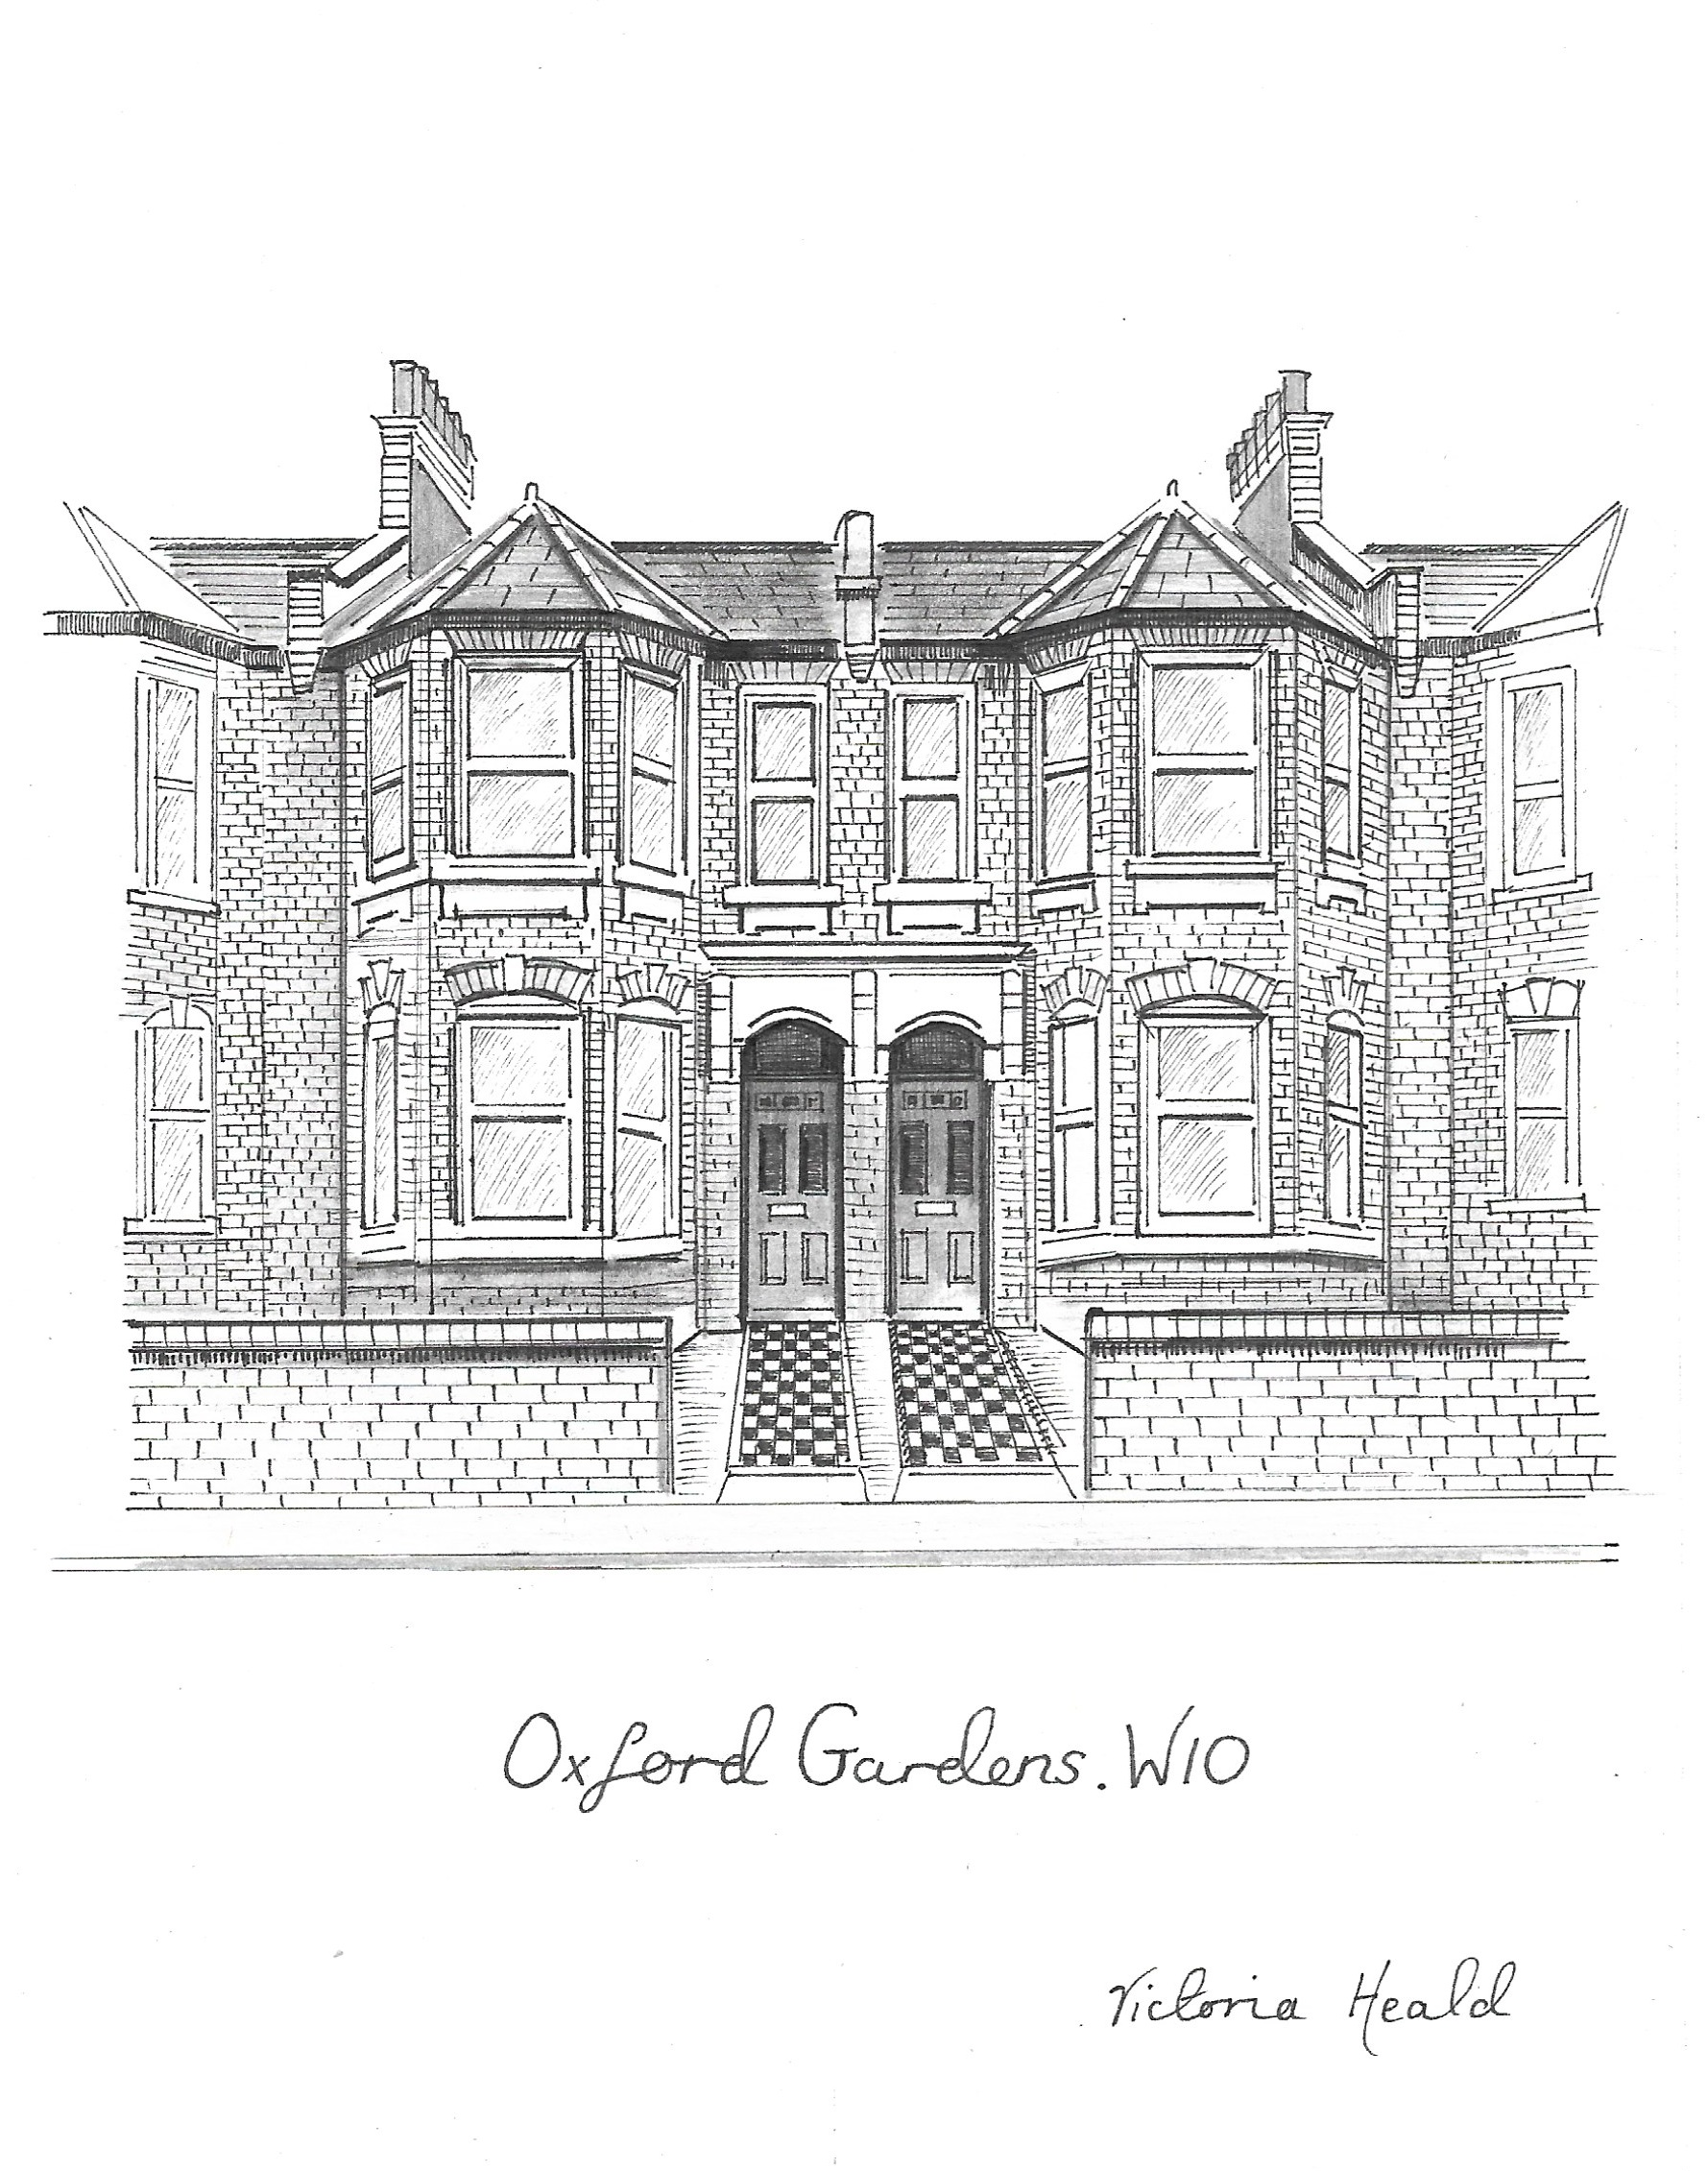 London Homes Series. Oxford Gardens. W10